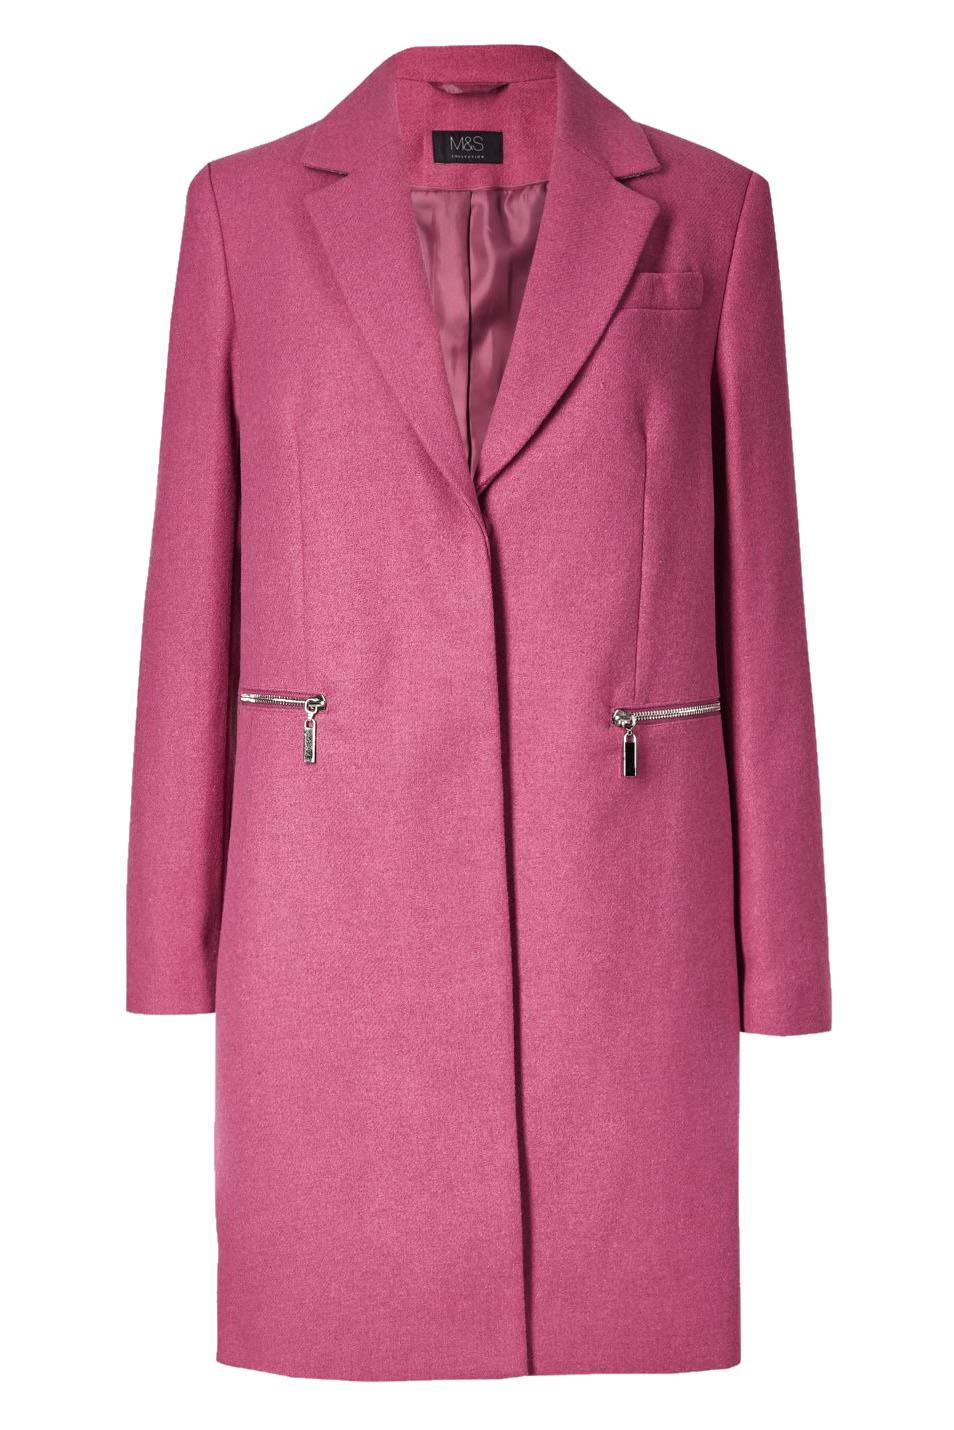 Marks-and-Spencer-Ladies-Size-20-M-amp-S-Pink-Wool-Blend-Coat-Womens thumbnail 14